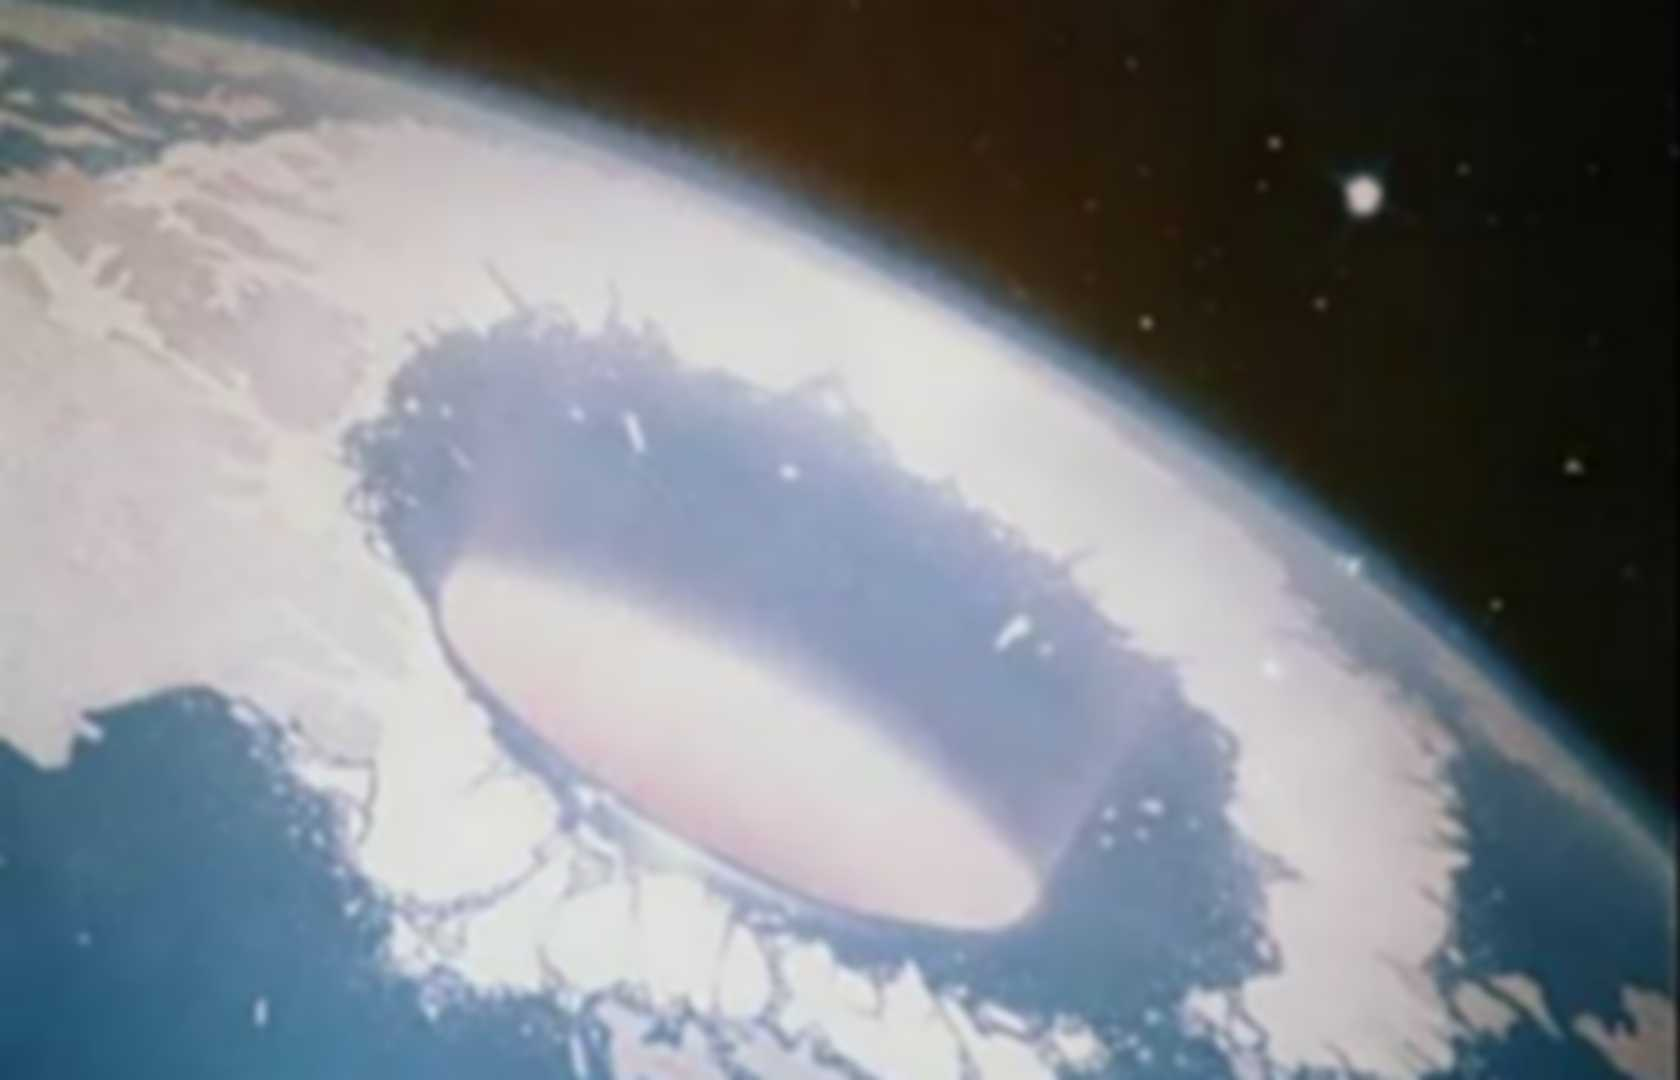 hacked nasa hollow earth - photo #27